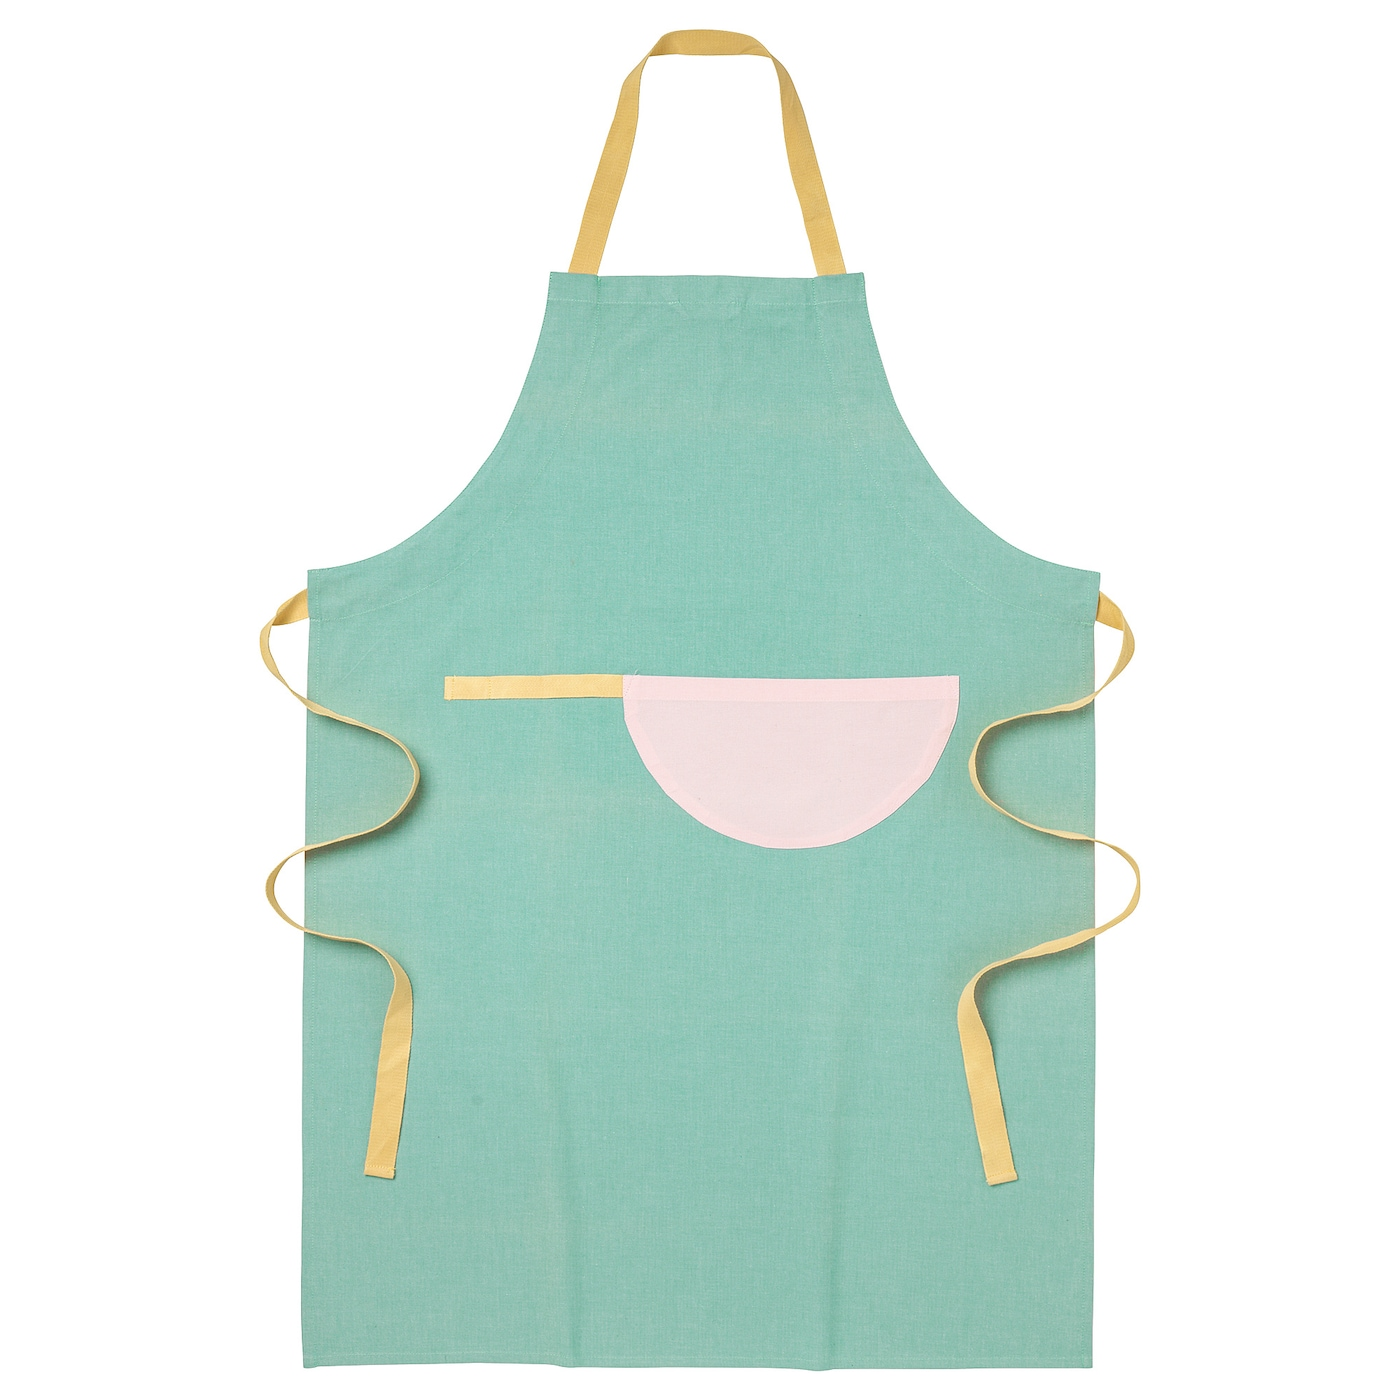 IKEA UDDIG apron With practical pocket for storing small items.